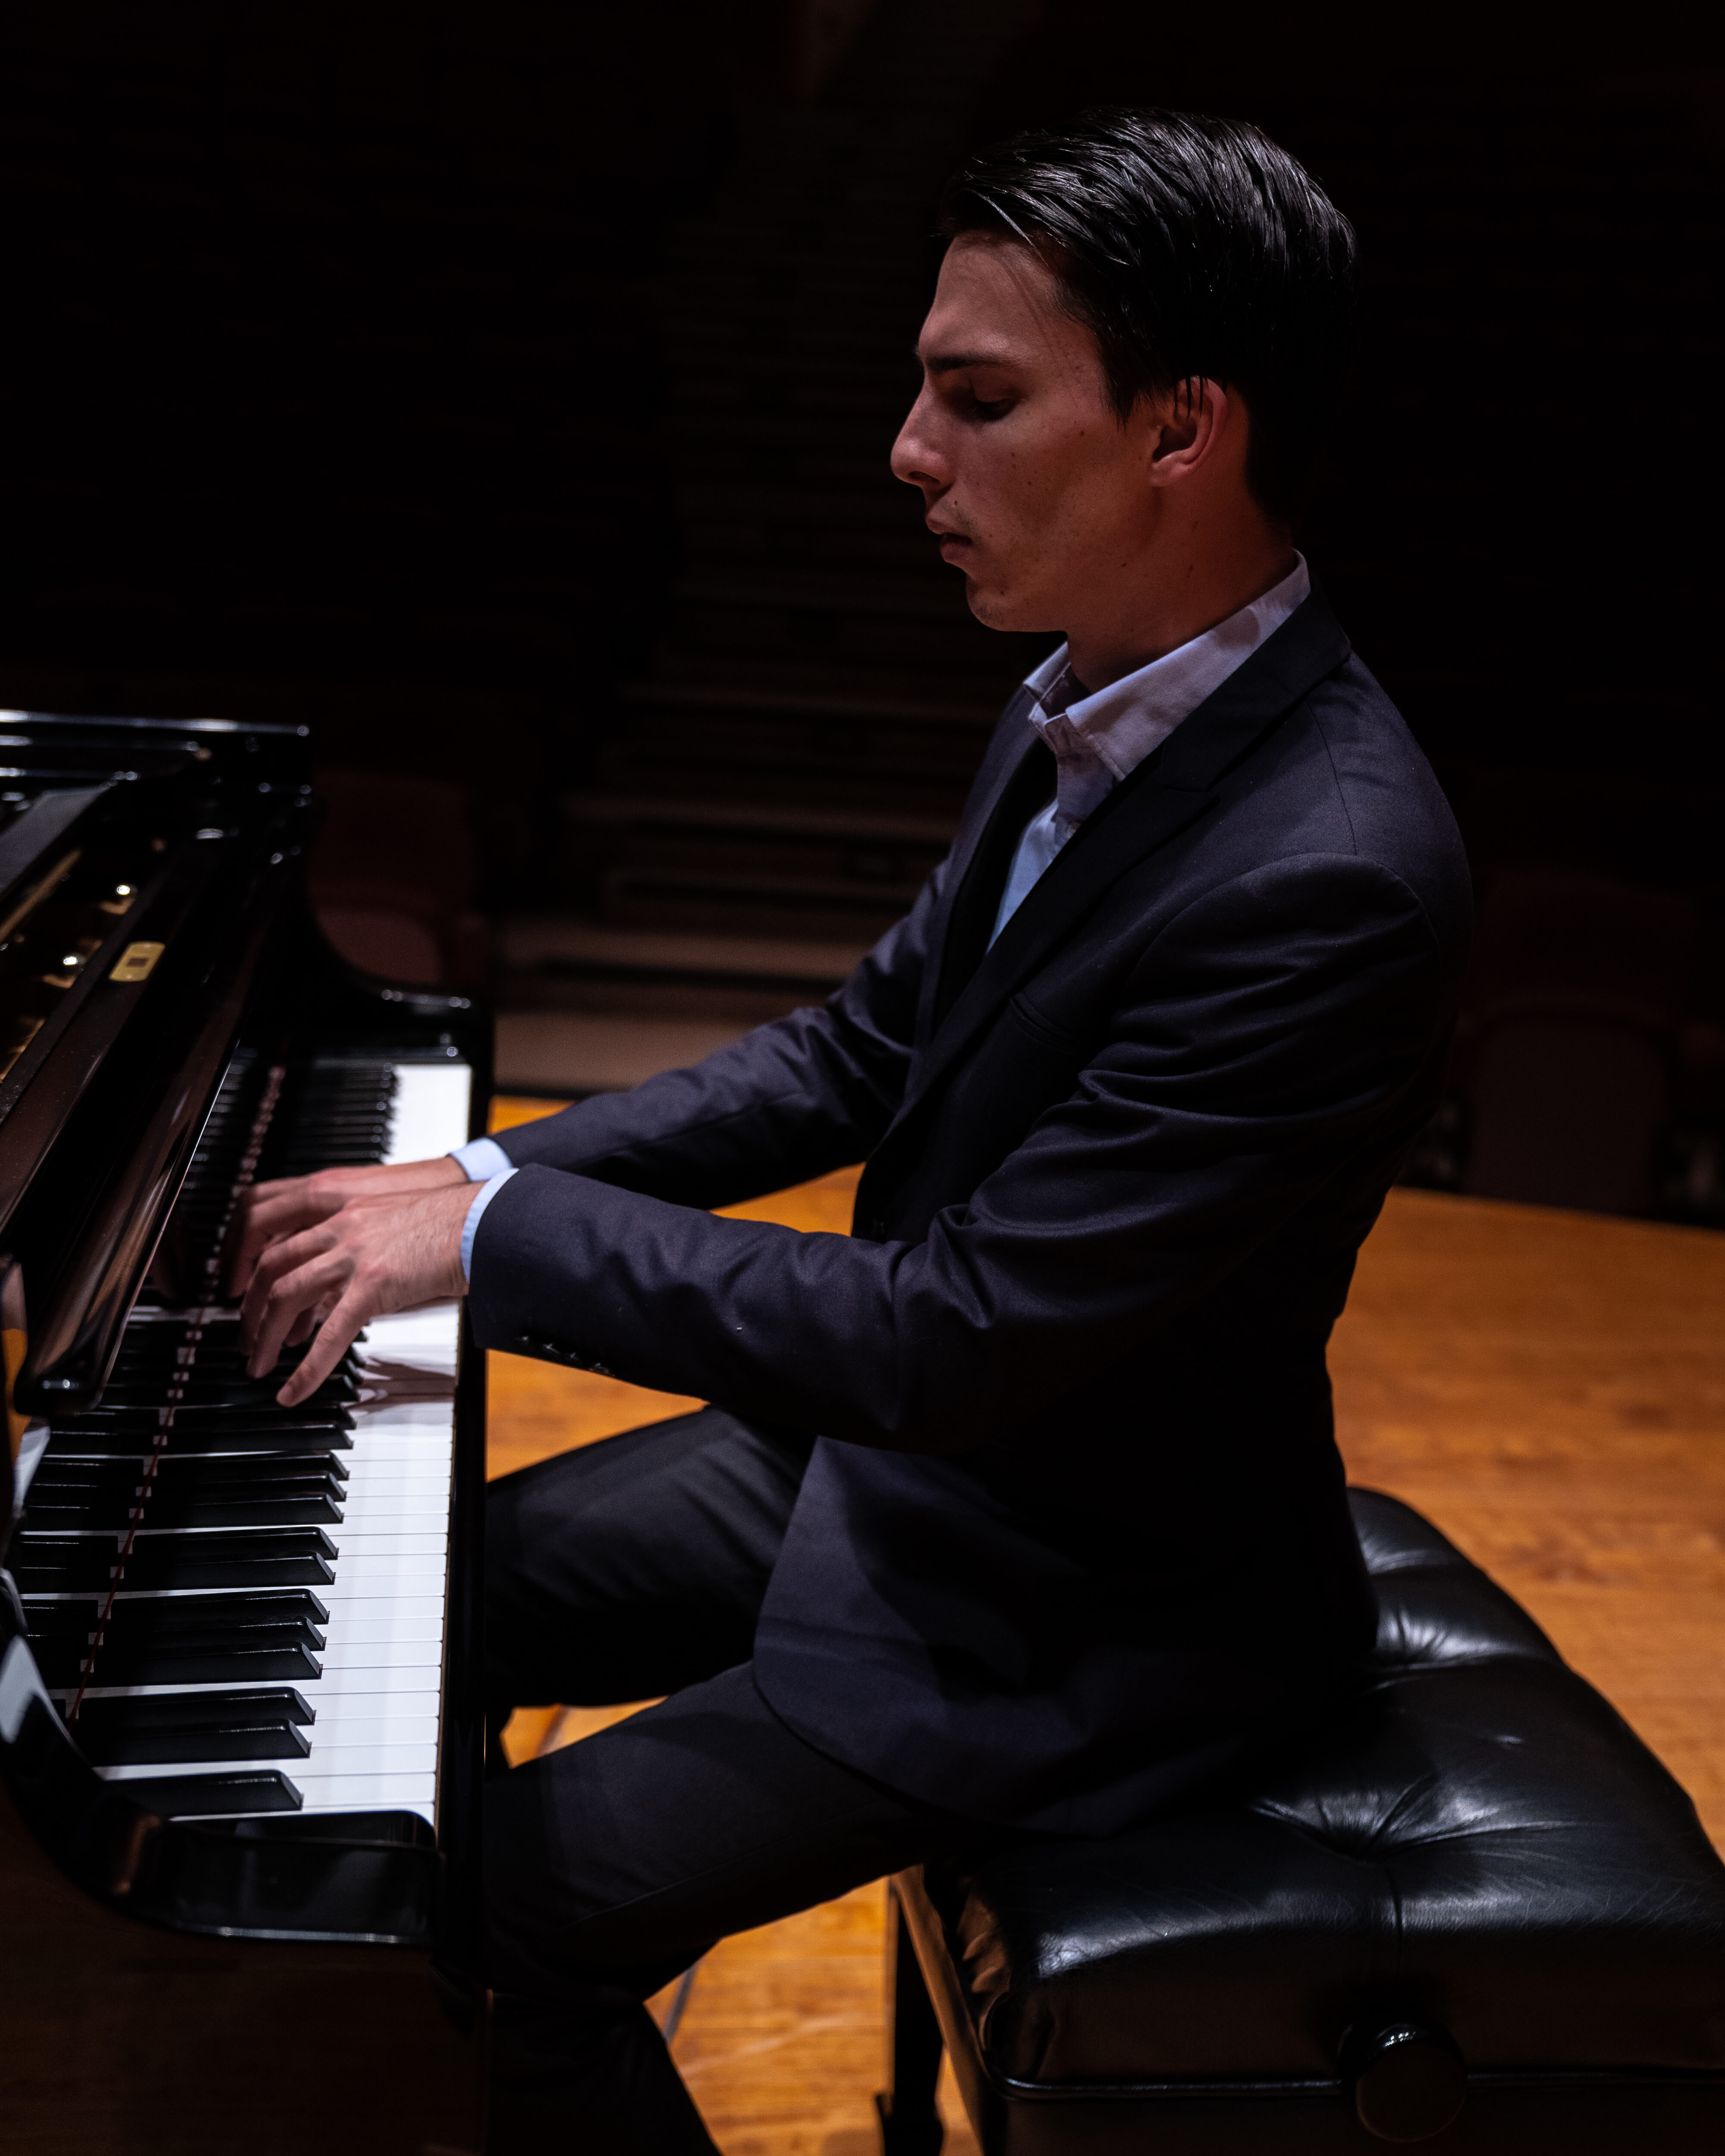 A pianist with curled fingers playing a grand piano in a dark room